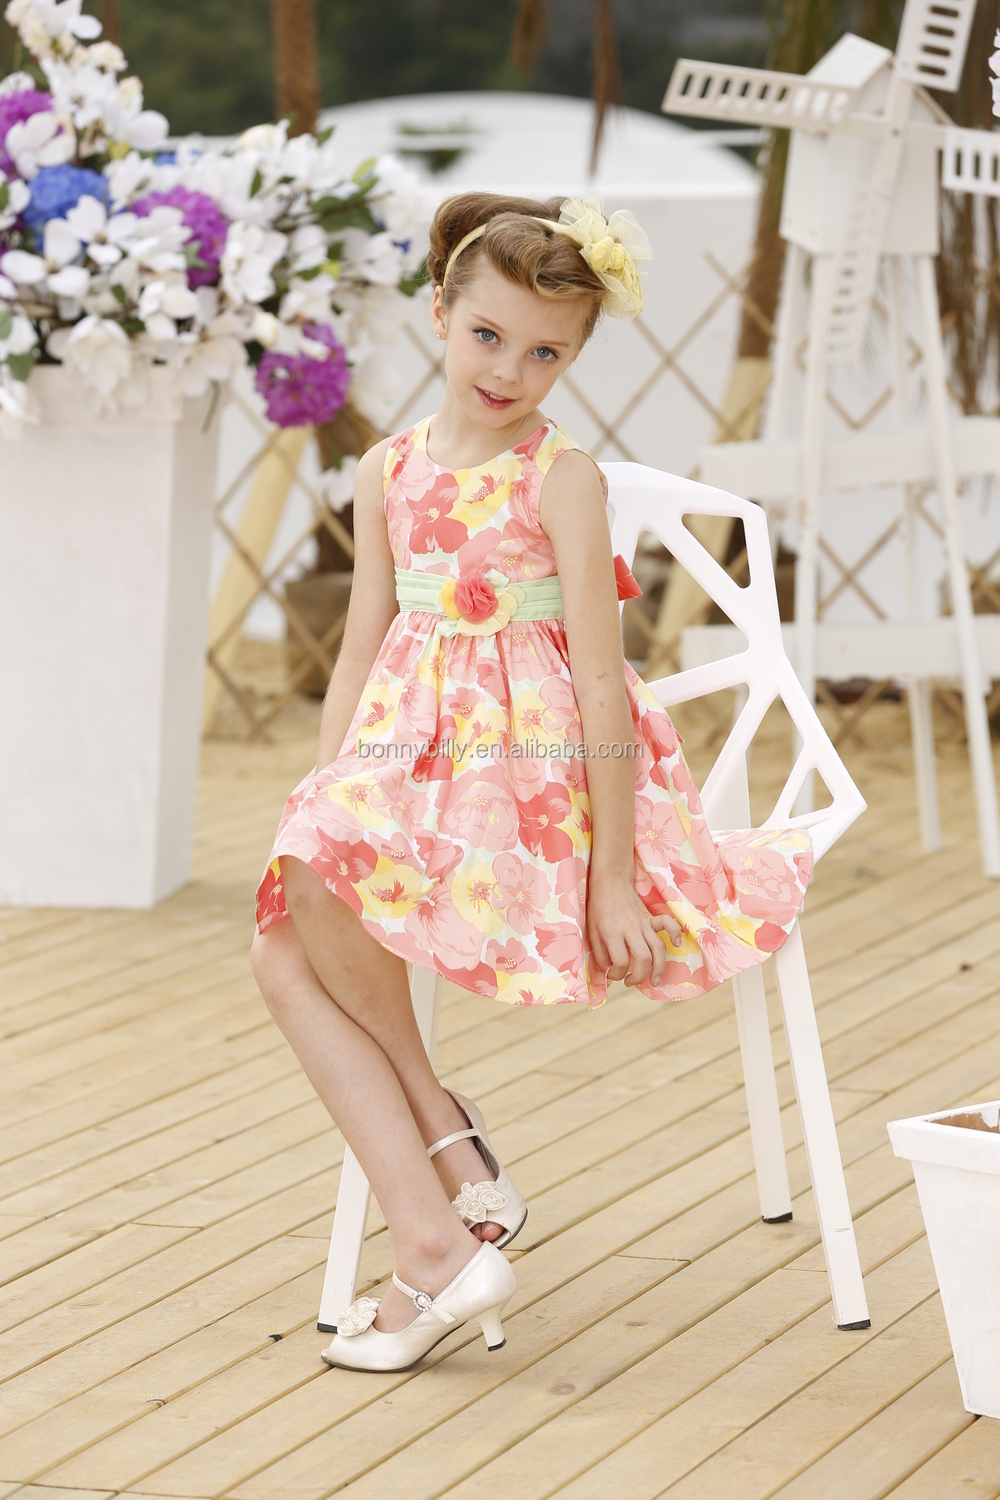 Fashion Show 2015 For Kids new fashion children frock